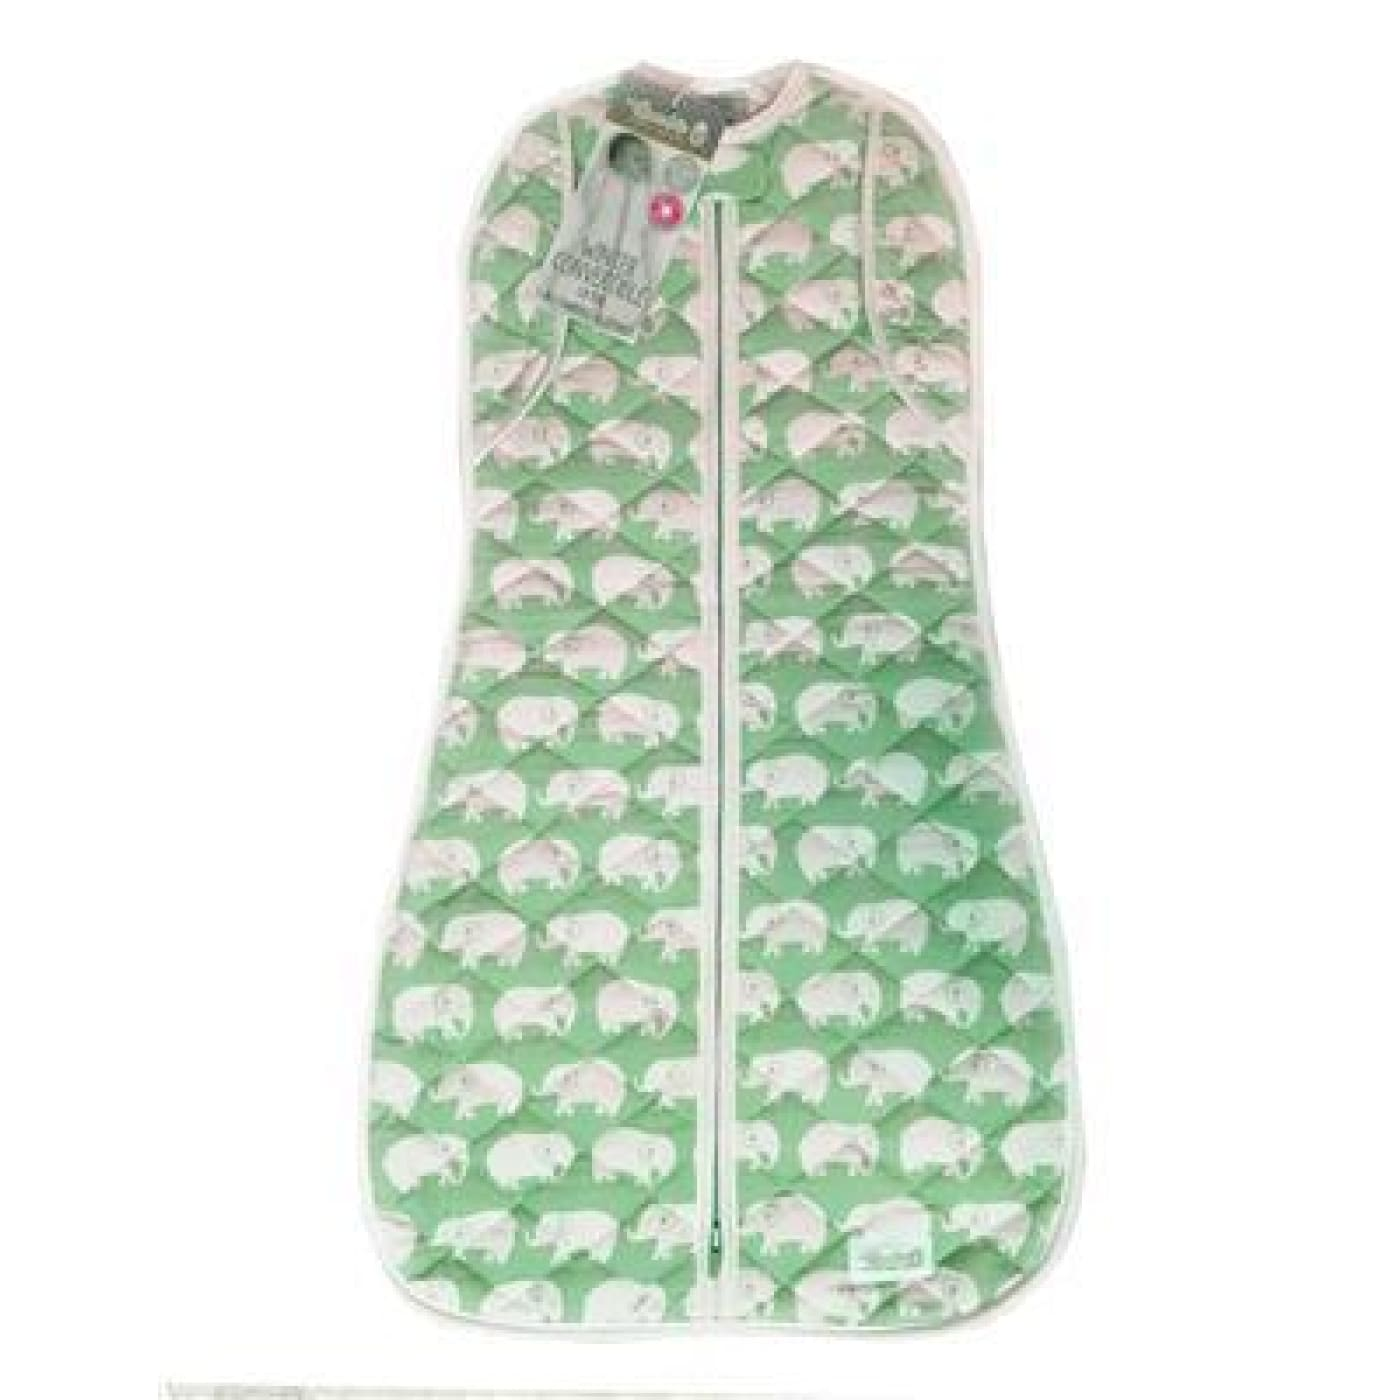 Woombie Winter Convertible - Green Elephant 1.8 TOG Big Baby 3-6M/6.5-9KG - NURSERY & BEDTIME - SWADDLES/WRAPS